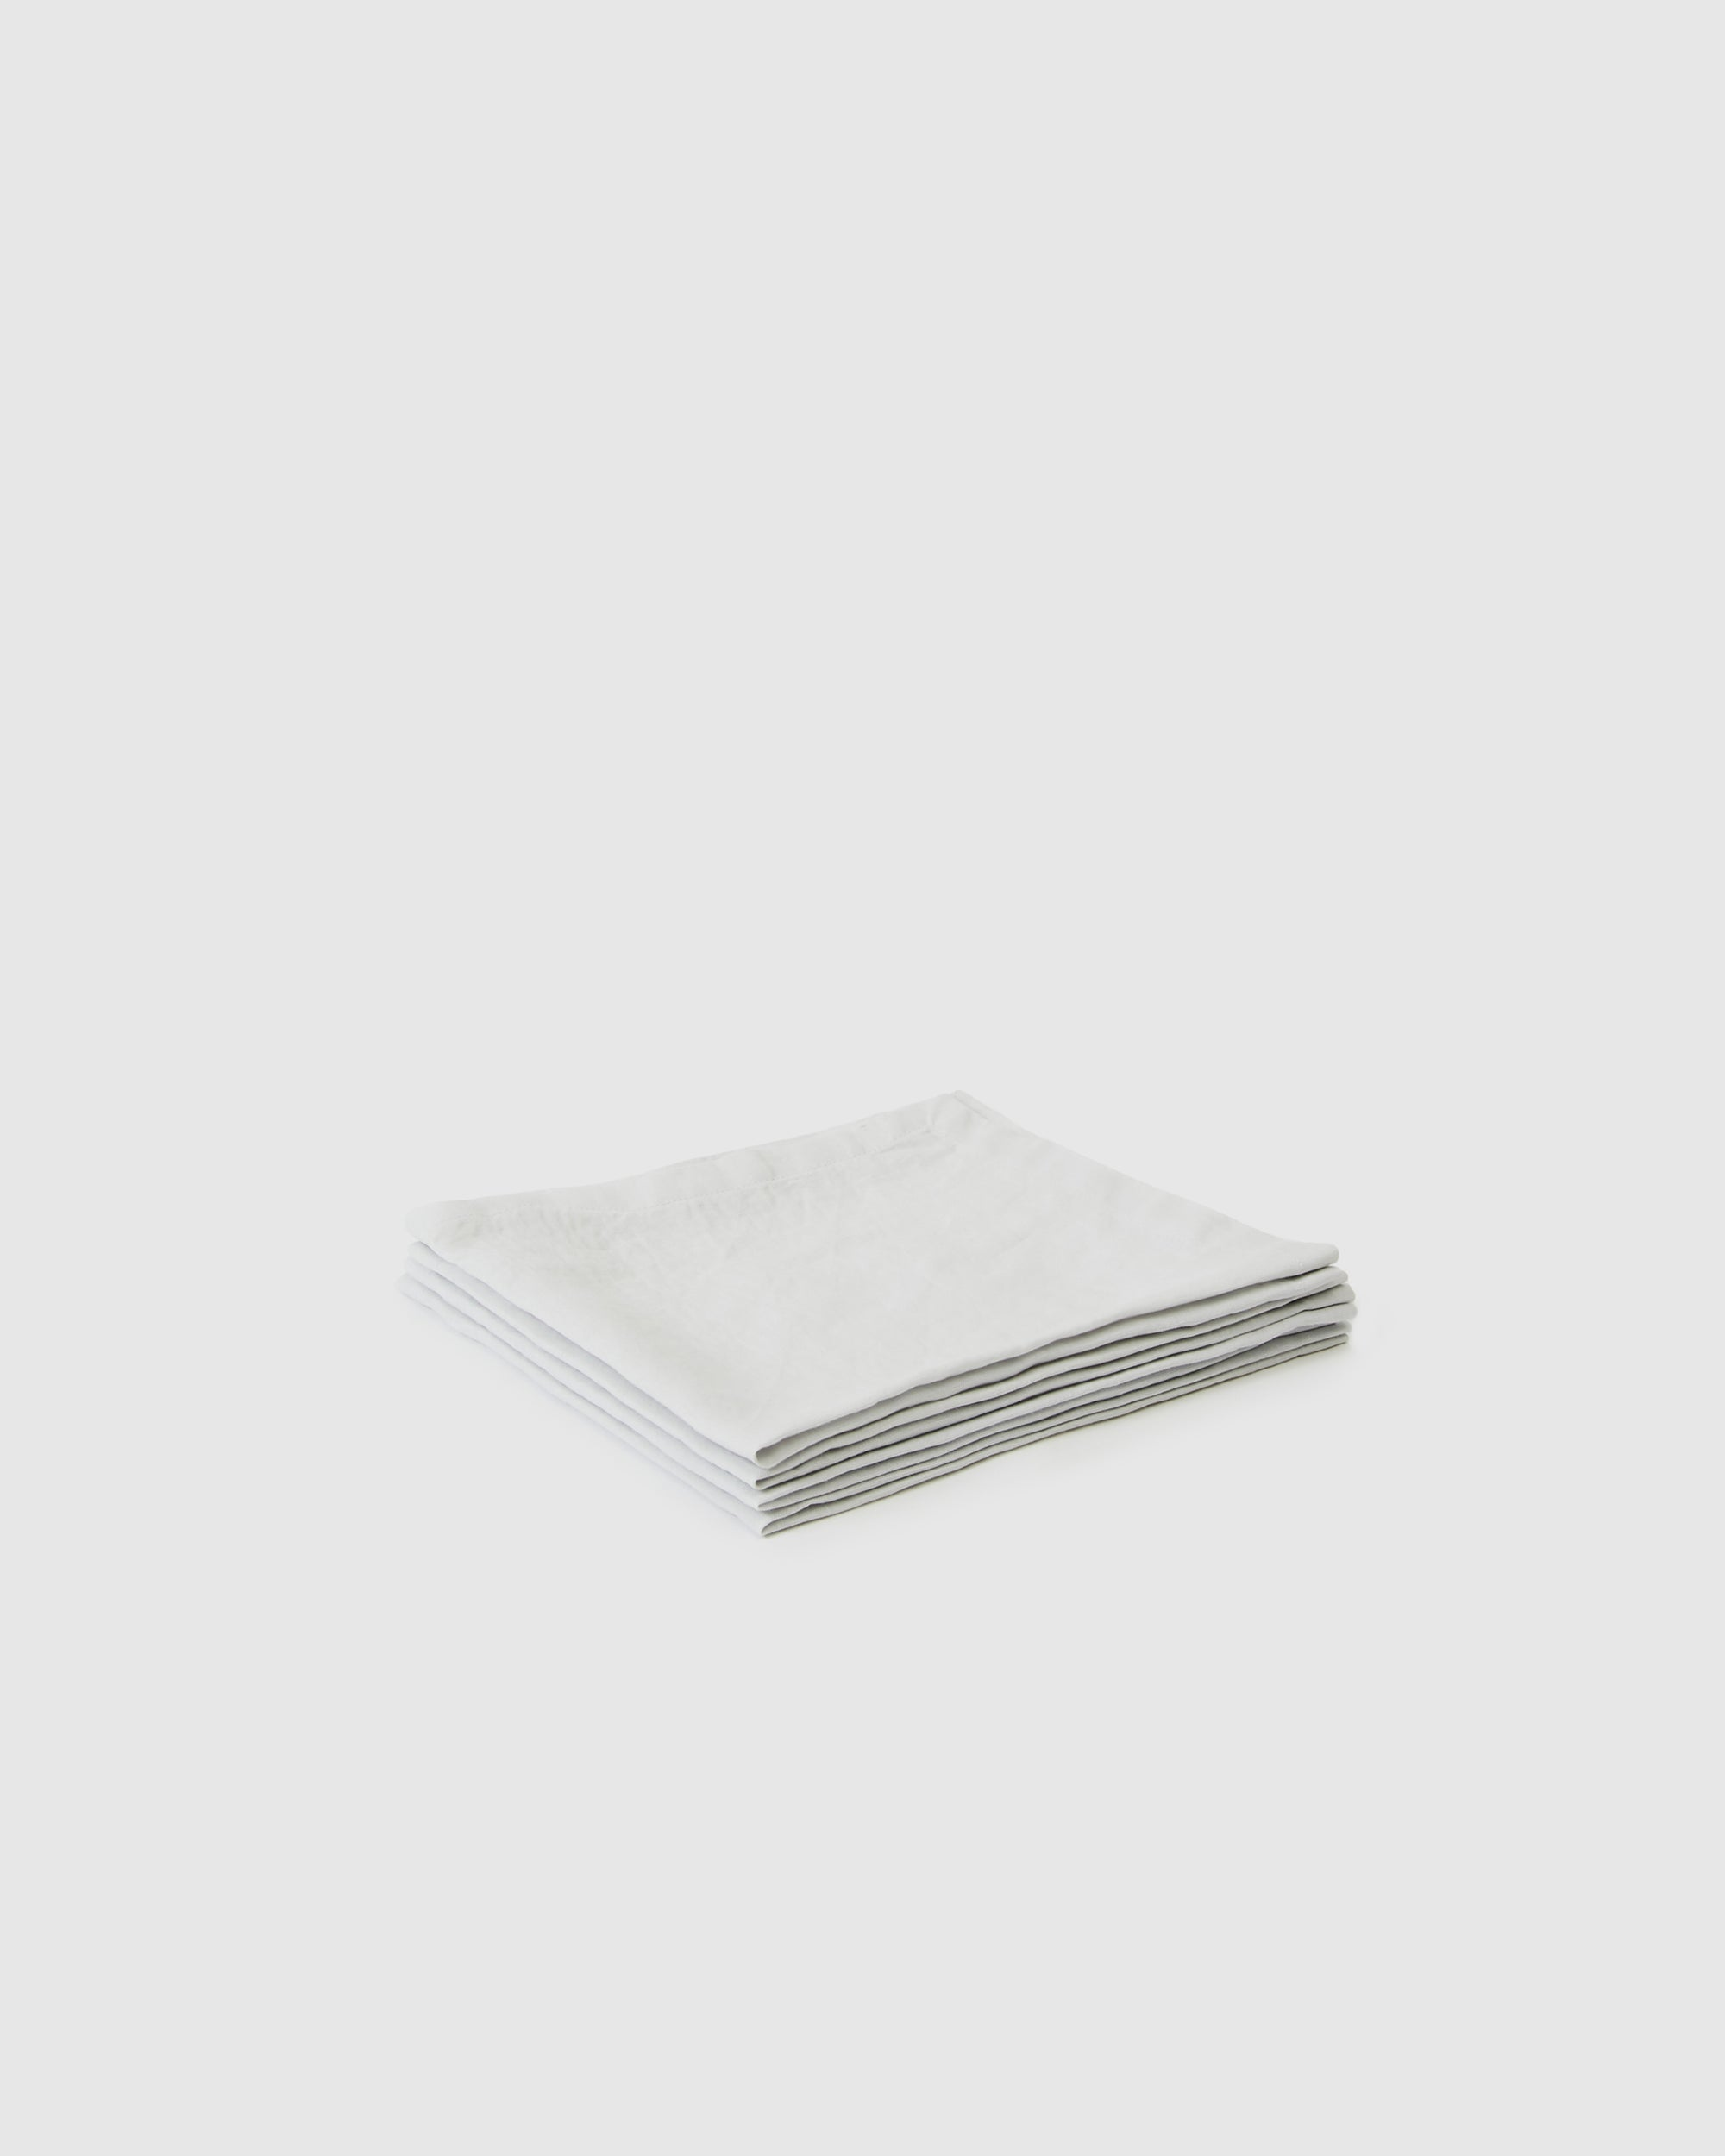 Berkeley Linen Table Napkins (Set of 4) - Glacier